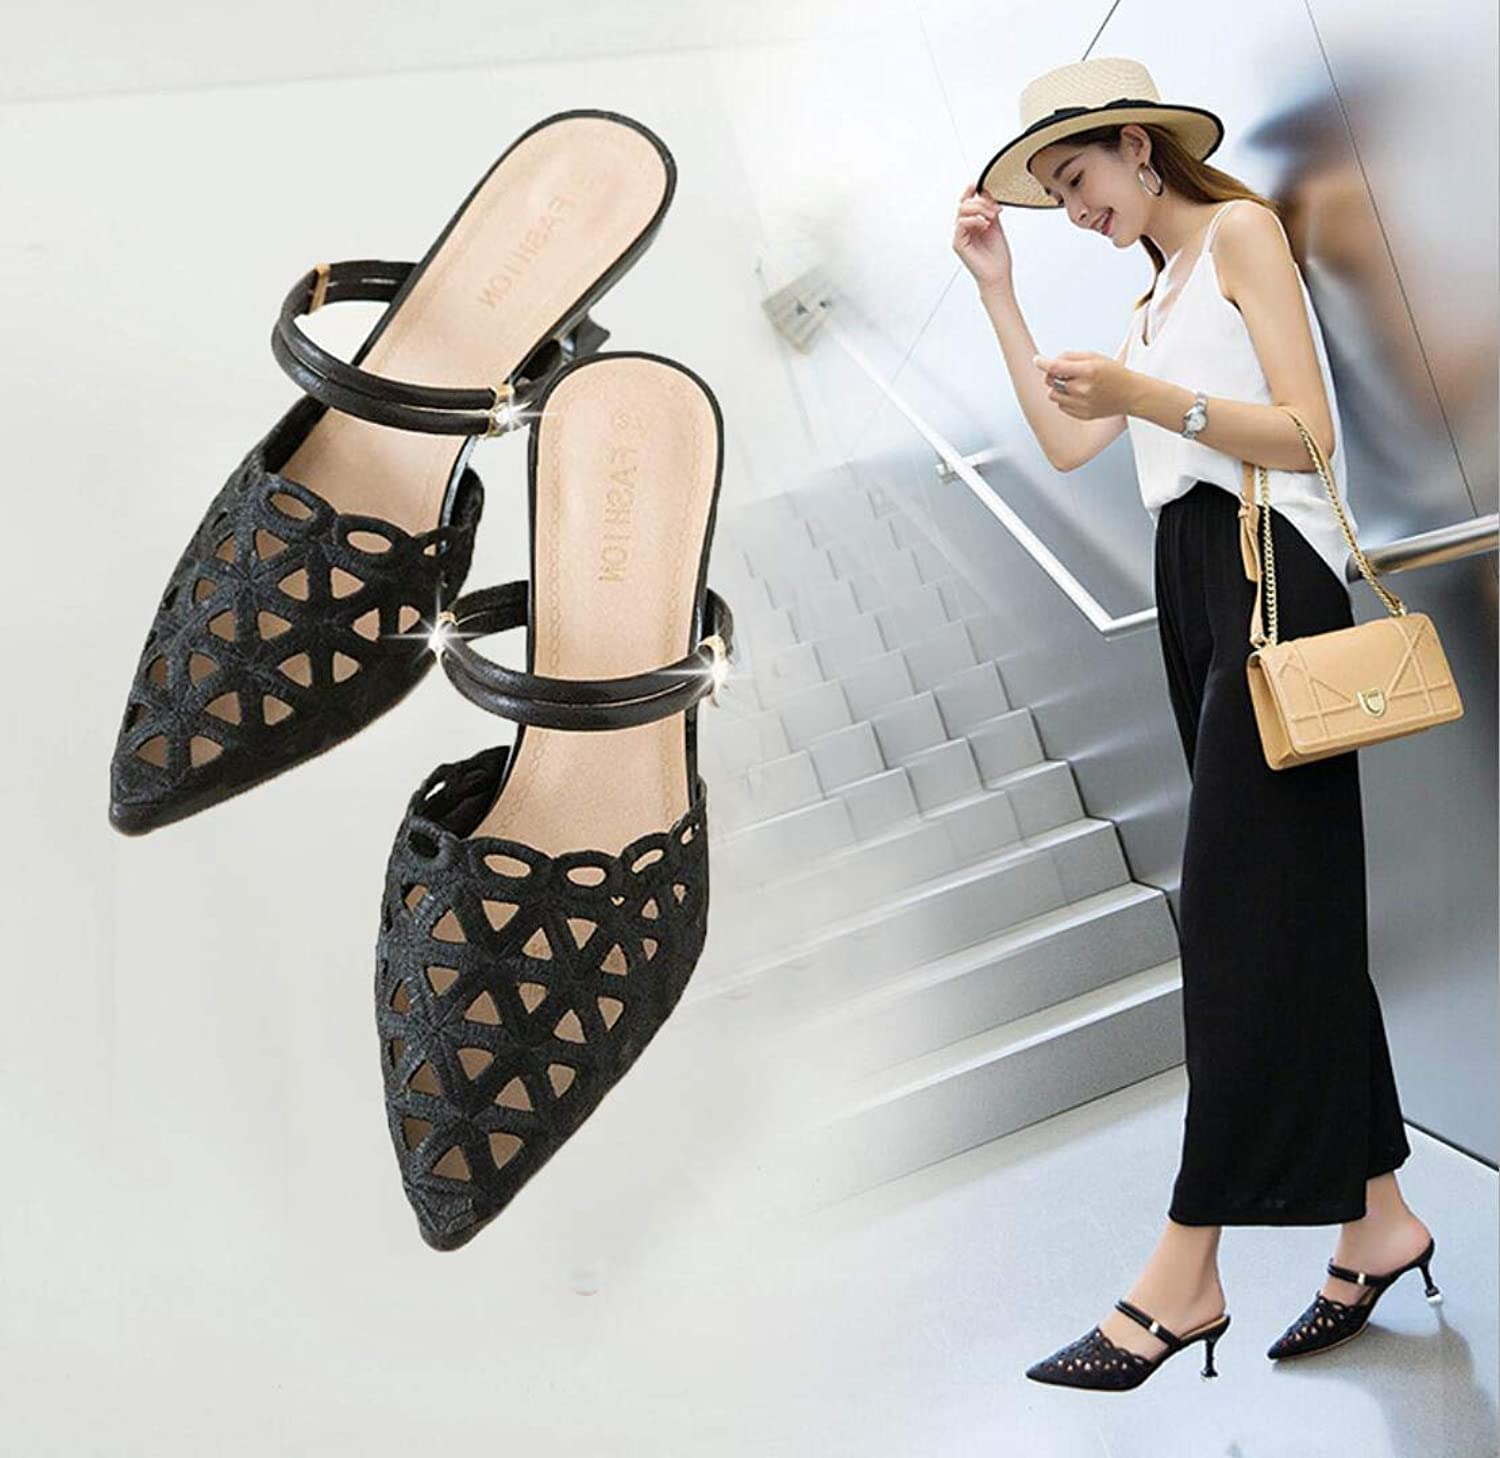 One shoes Two Women's Sandals 2019 Summer New Hollow Pointed Stiletto high Heel Fashion Sandals Women,A,US6 EU36 UK4 CN36